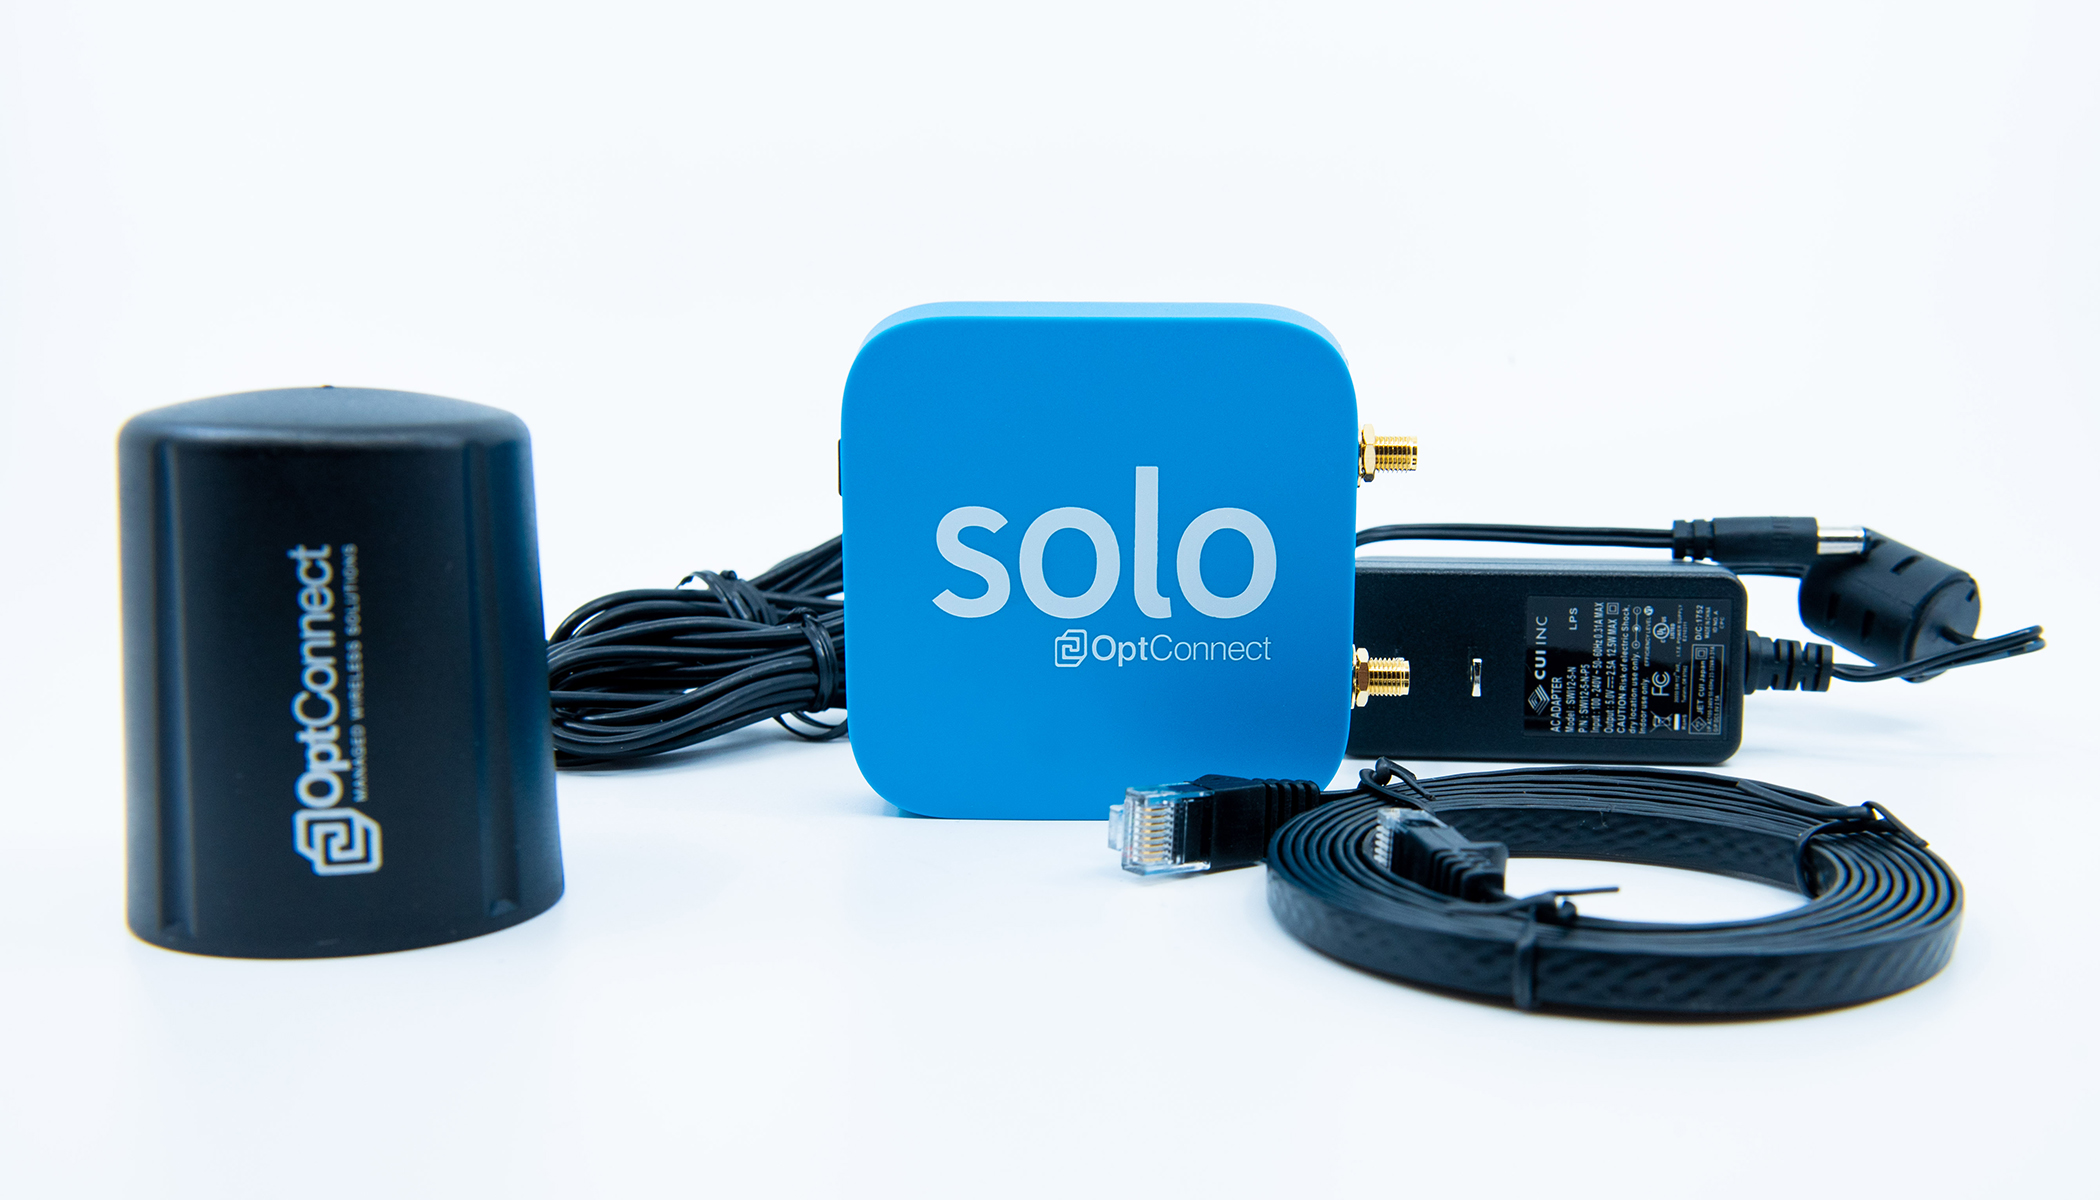 OptConnect solo